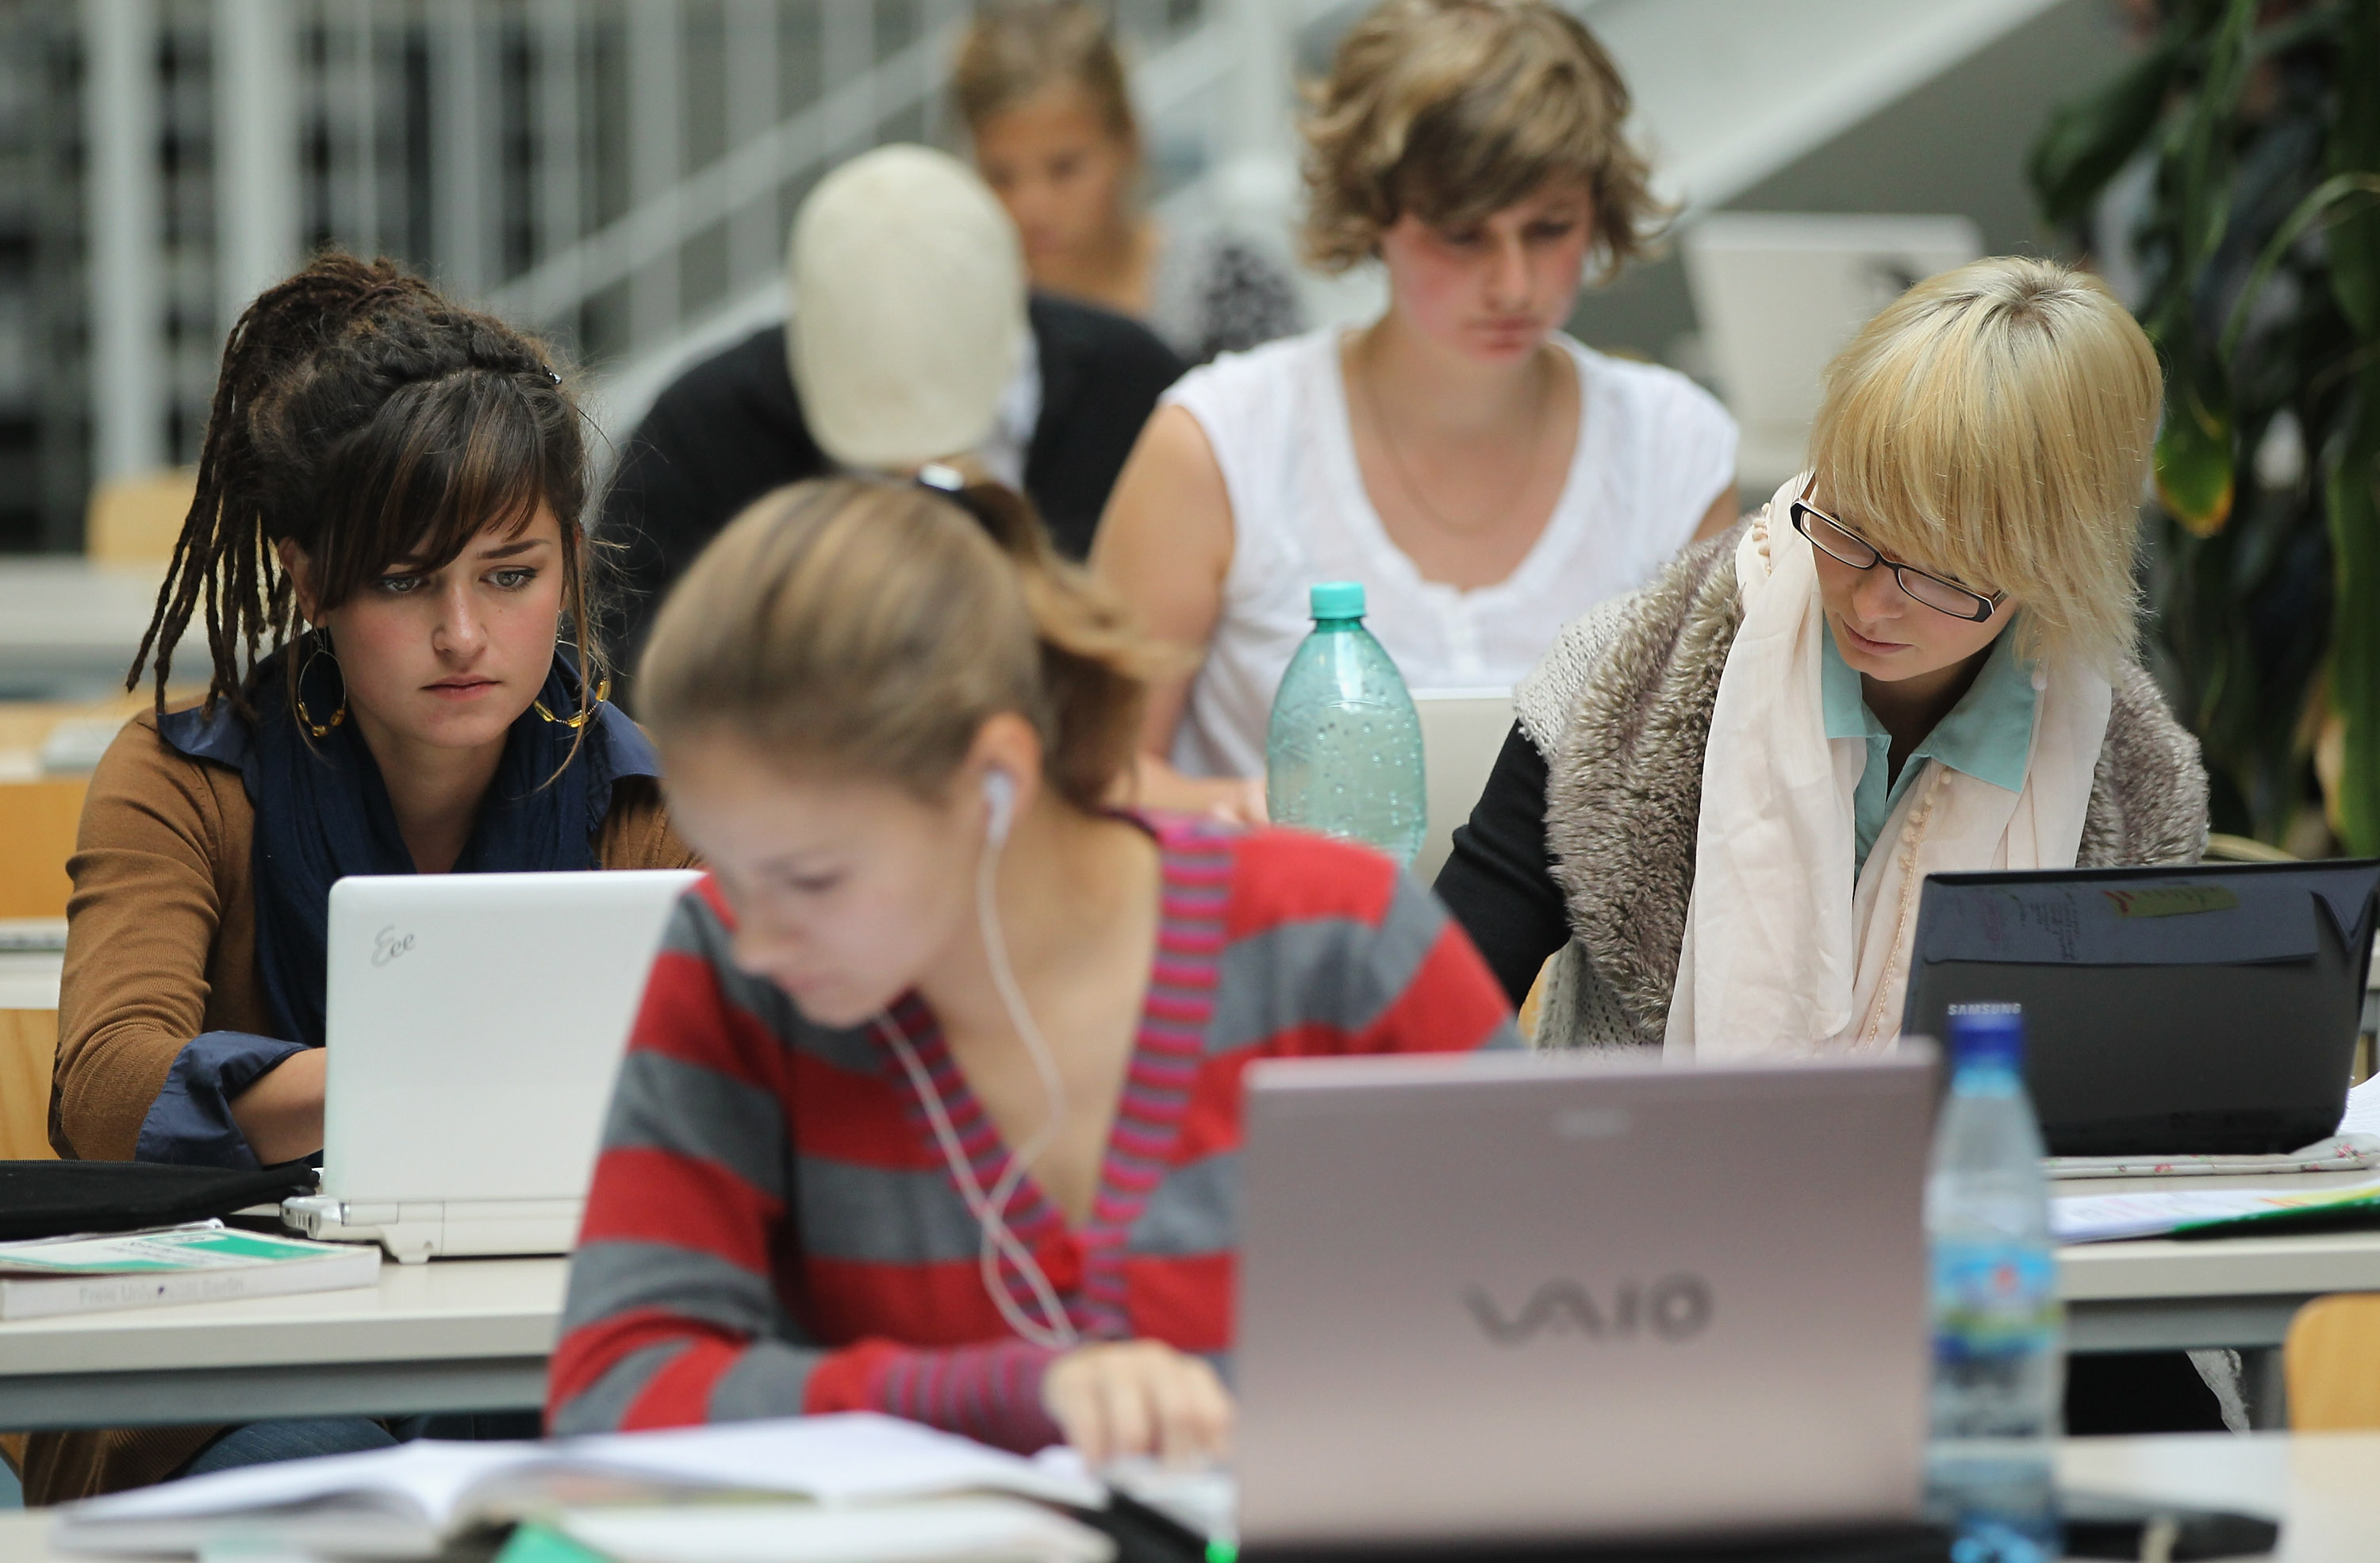 BERLIN, GERMANY - SEPTEMBER 20: Students study with their laptop computers in the Pedagogical Library at the Freie Universitaet university on September 20, 2011 in Berlin, Germany. German universities recorded a record 2.218 million matriculations in the 2010/2011 winter semester, a rise of 4.5%, and expect even more students in the coming winter semster, which starts in October. The end of compulsory military service in the Bundeswehr, the German armed forces, which went into effect earlier this year, is a major contributing factor to the rise in the numbers of students arriving at universities across the country. (Photo by Sean Gallup/Getty Images)